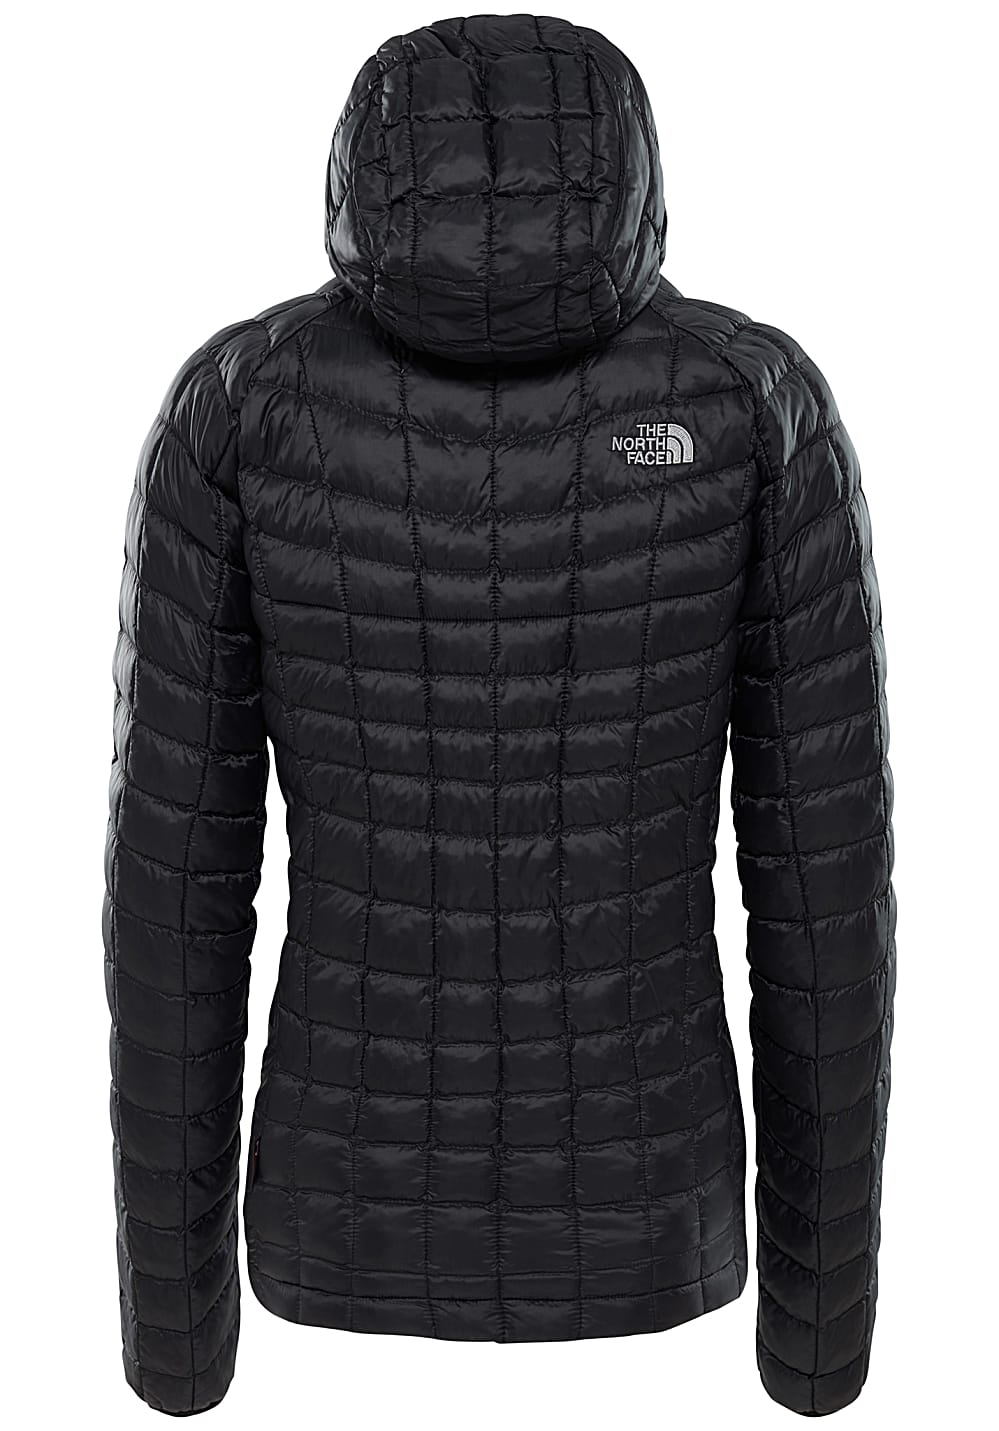 3da3d7599fc65 The North Thermoball De Chaqueta Next Face Sport Hoody vHdwxCqBW